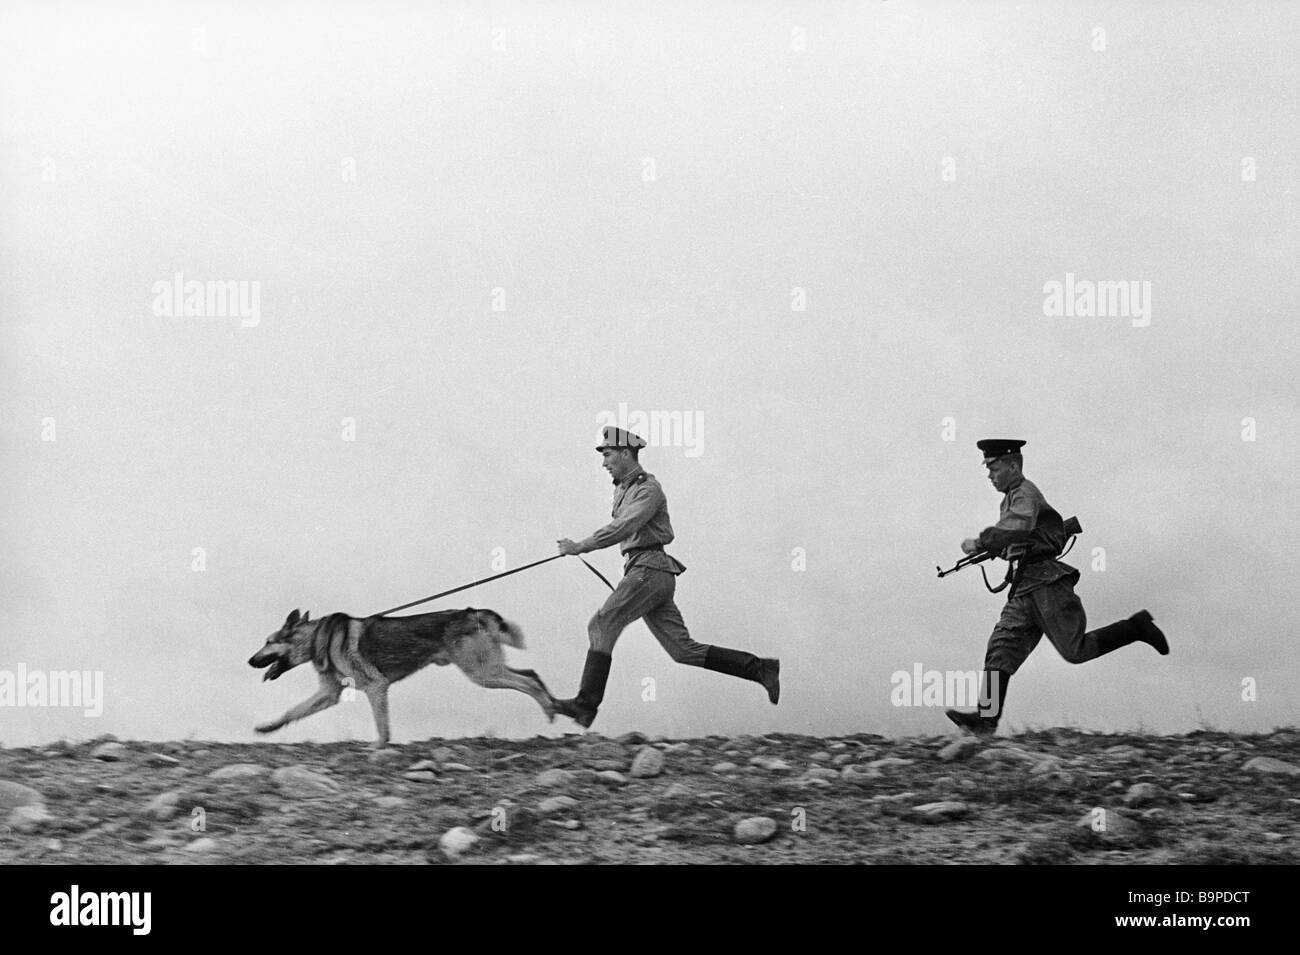 Frontier guards on duty pursuing a trespasser with their dog - Stock Image